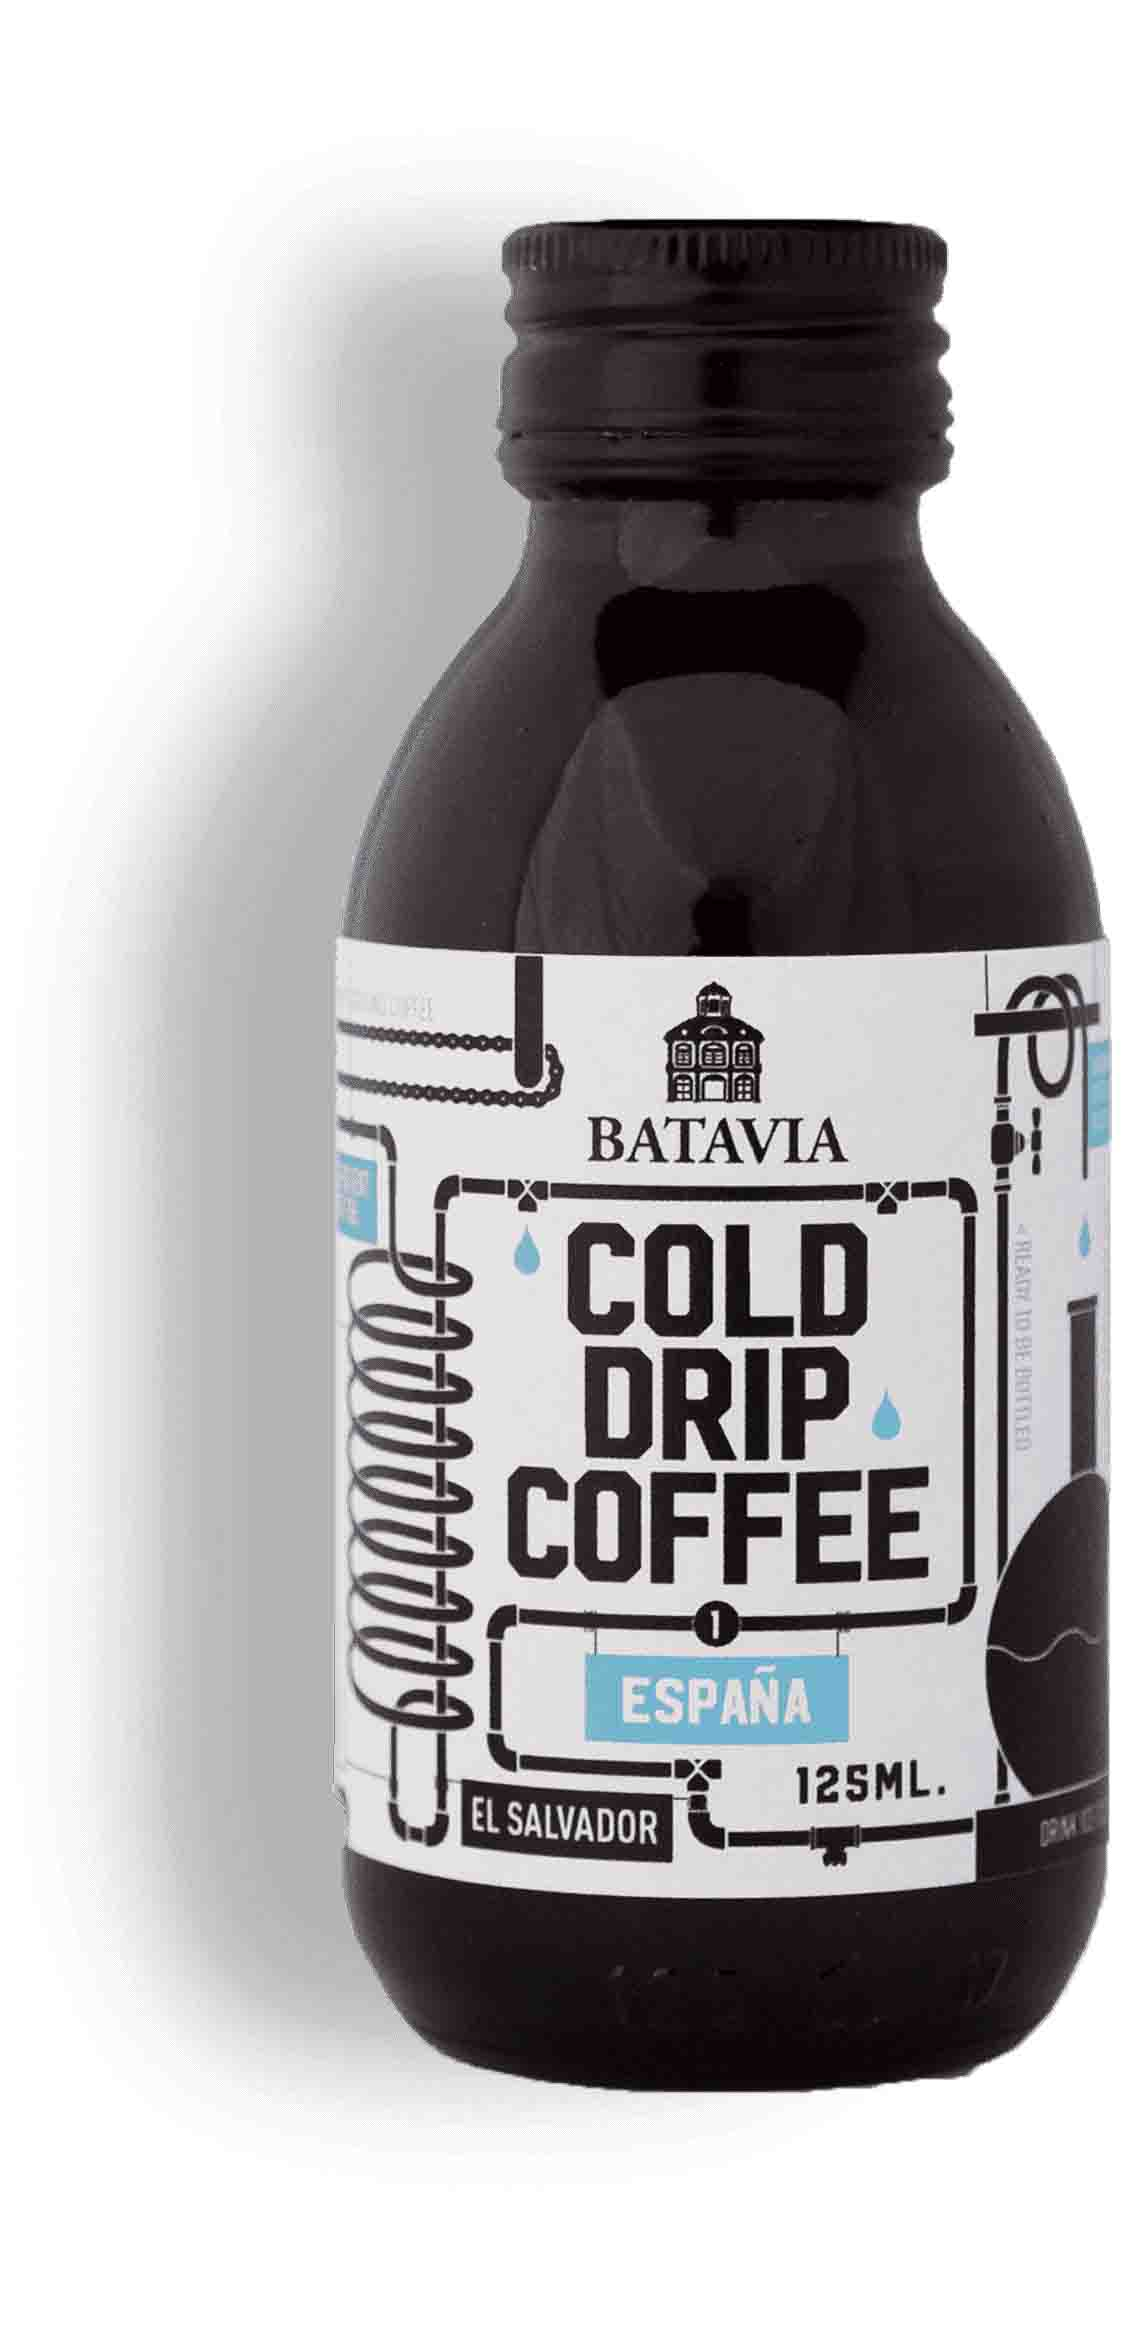 batavia cold drip coffee espana 125ml